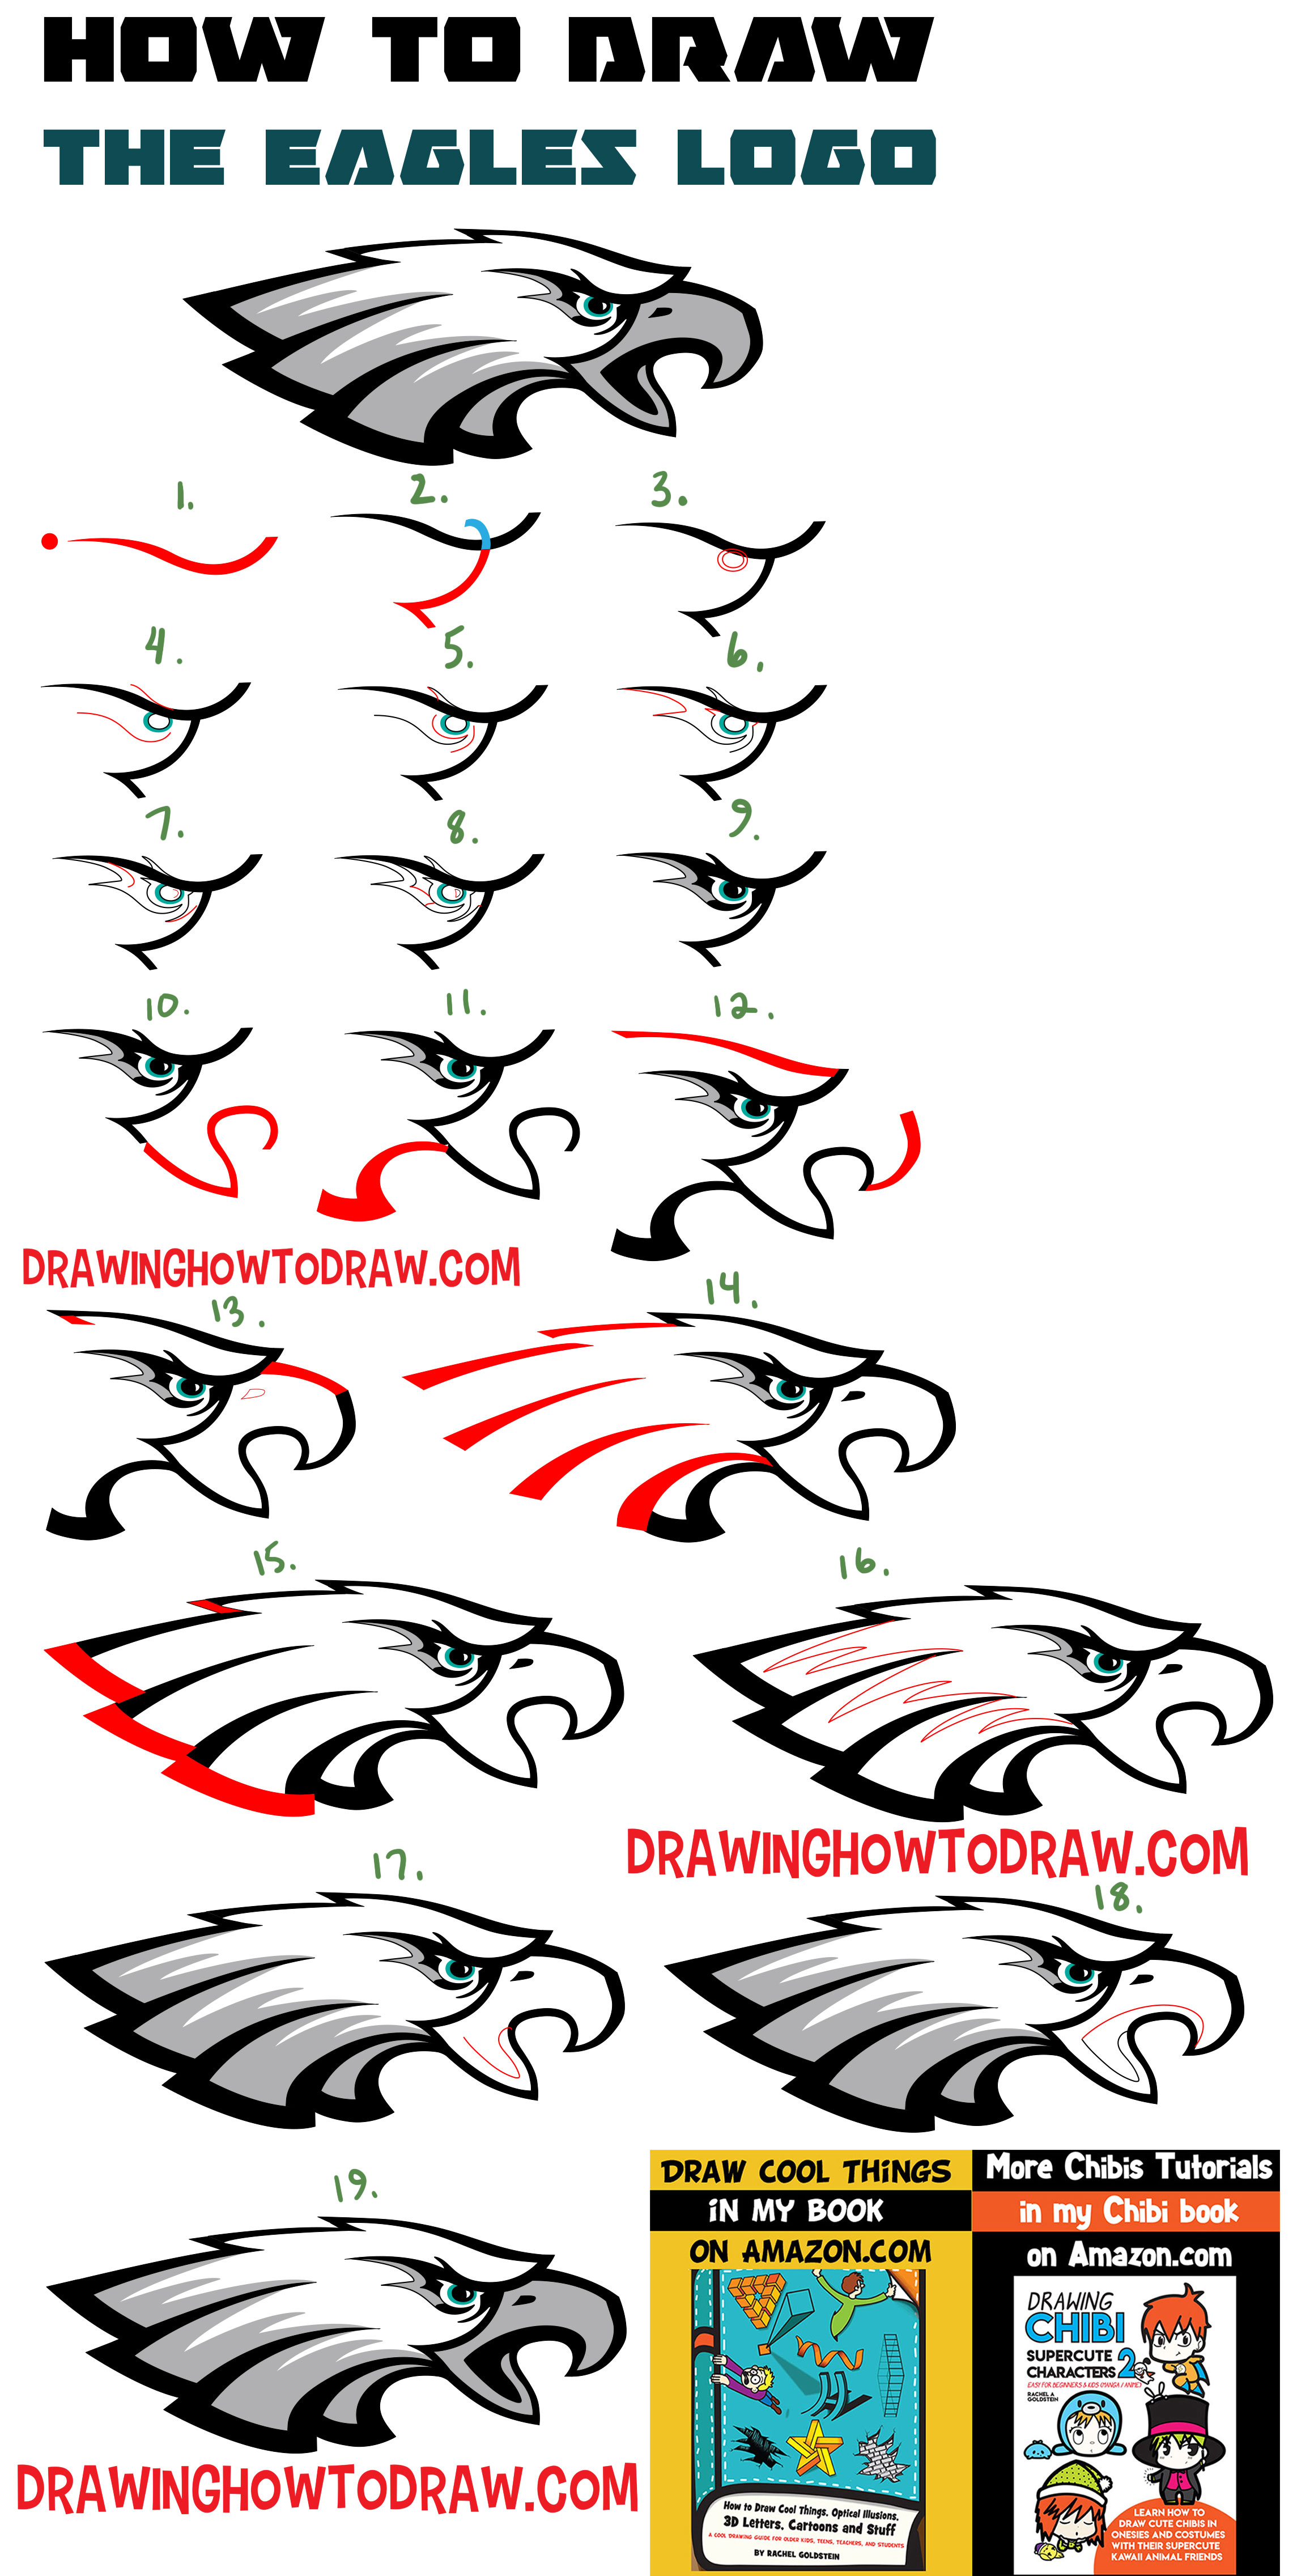 2319x4545 How To Draw The Eagle's Logo With Easy Step